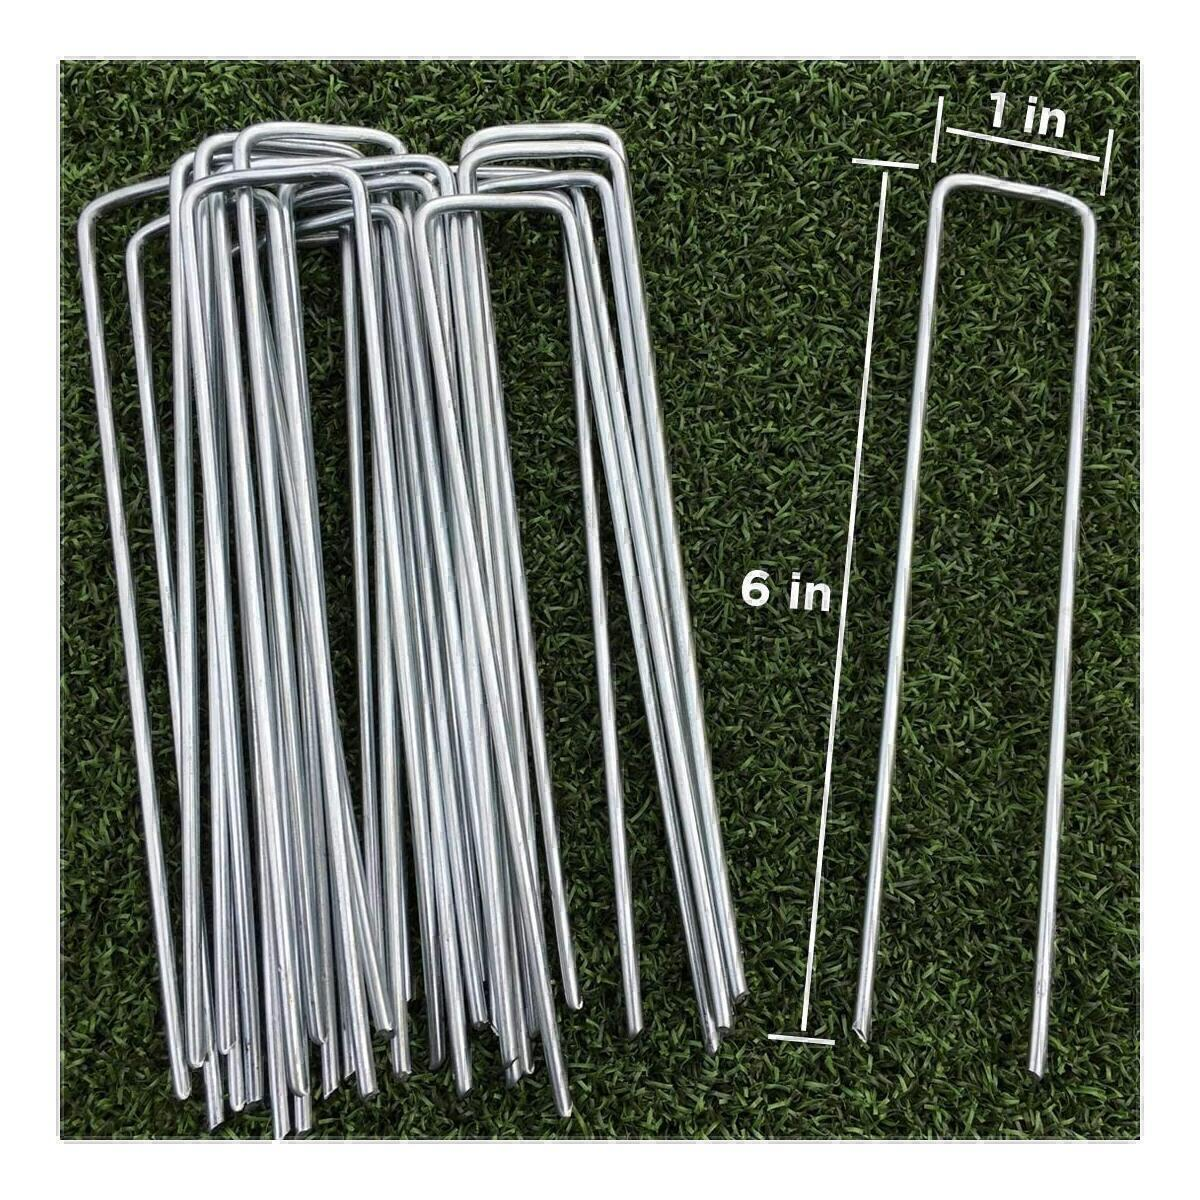 100-Pack 6'' 11 Gauge Heavy Duty U-Shaped Securing Stakes Pins Spikes Pegs - Sod Fence Staples for Anchoring Weed Barrier and Landscape Fabric, Netting, Irrigation Hoses, Ground Mat, More Applications